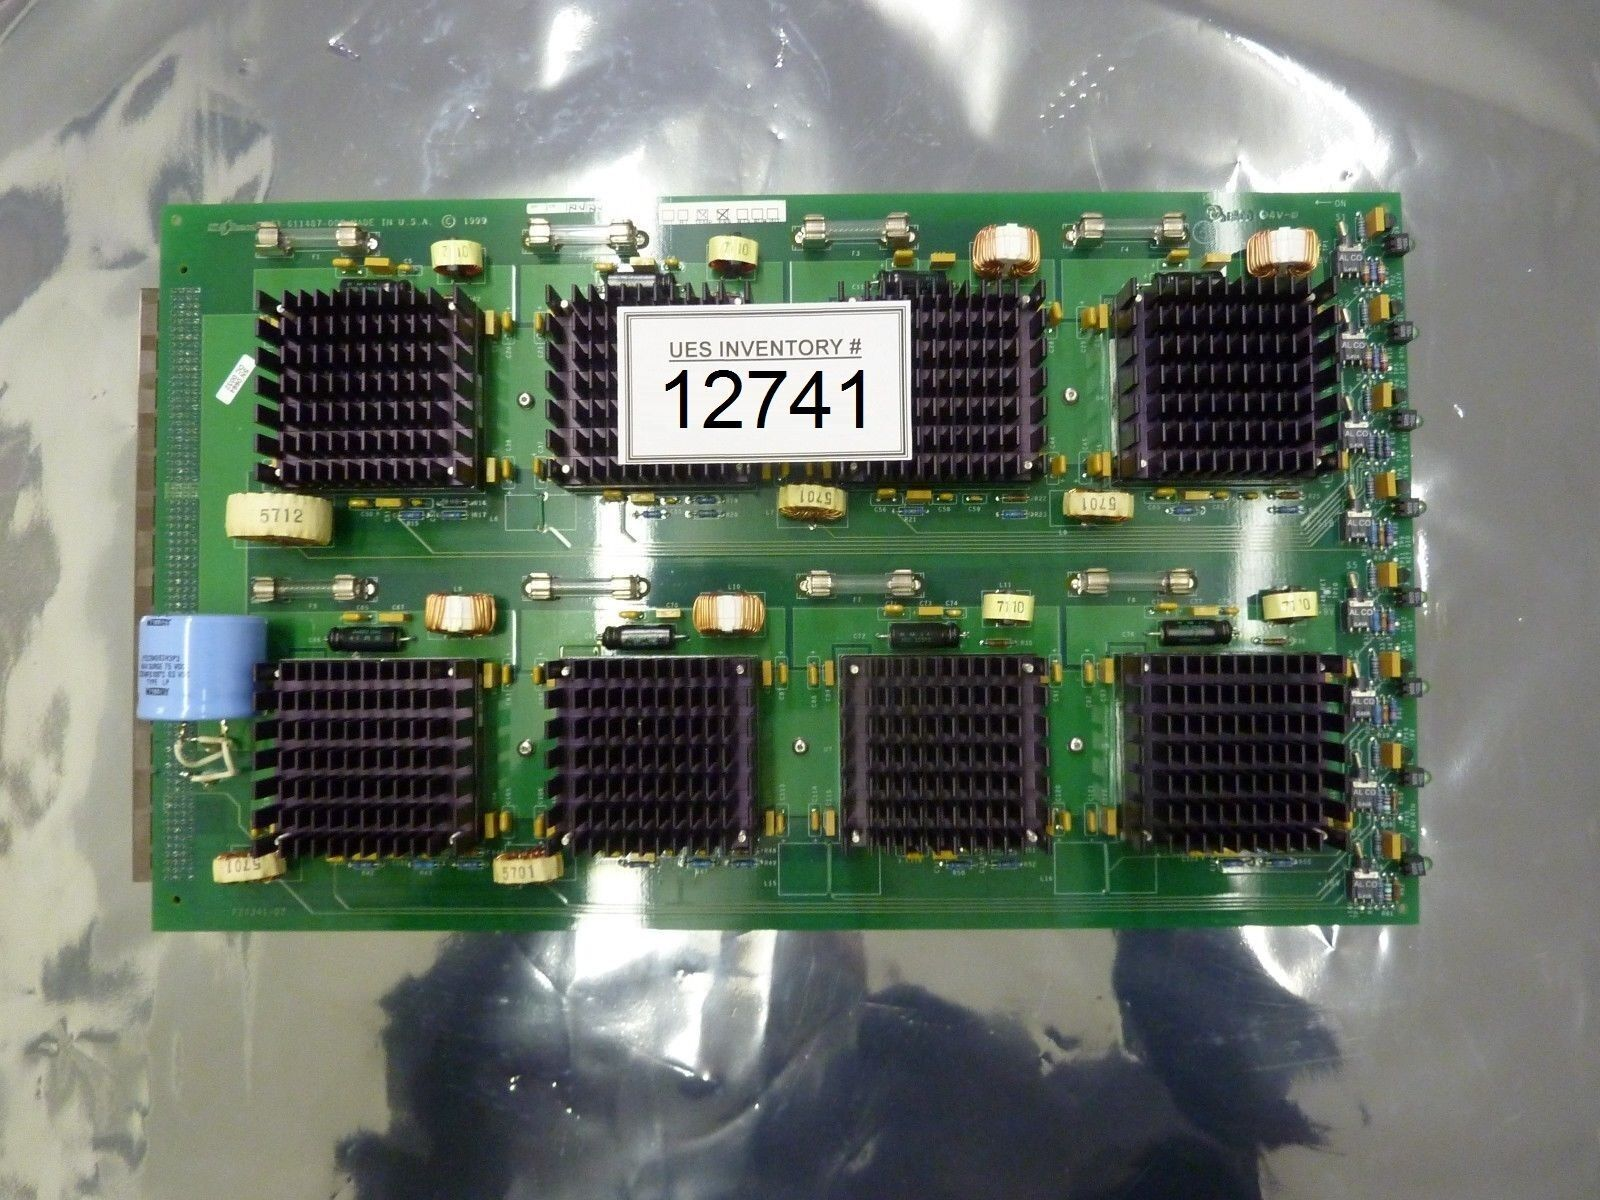 KLA-Tencor 710-611487-001 Image Computer DC PCB Card 073-611487-000 Used Working